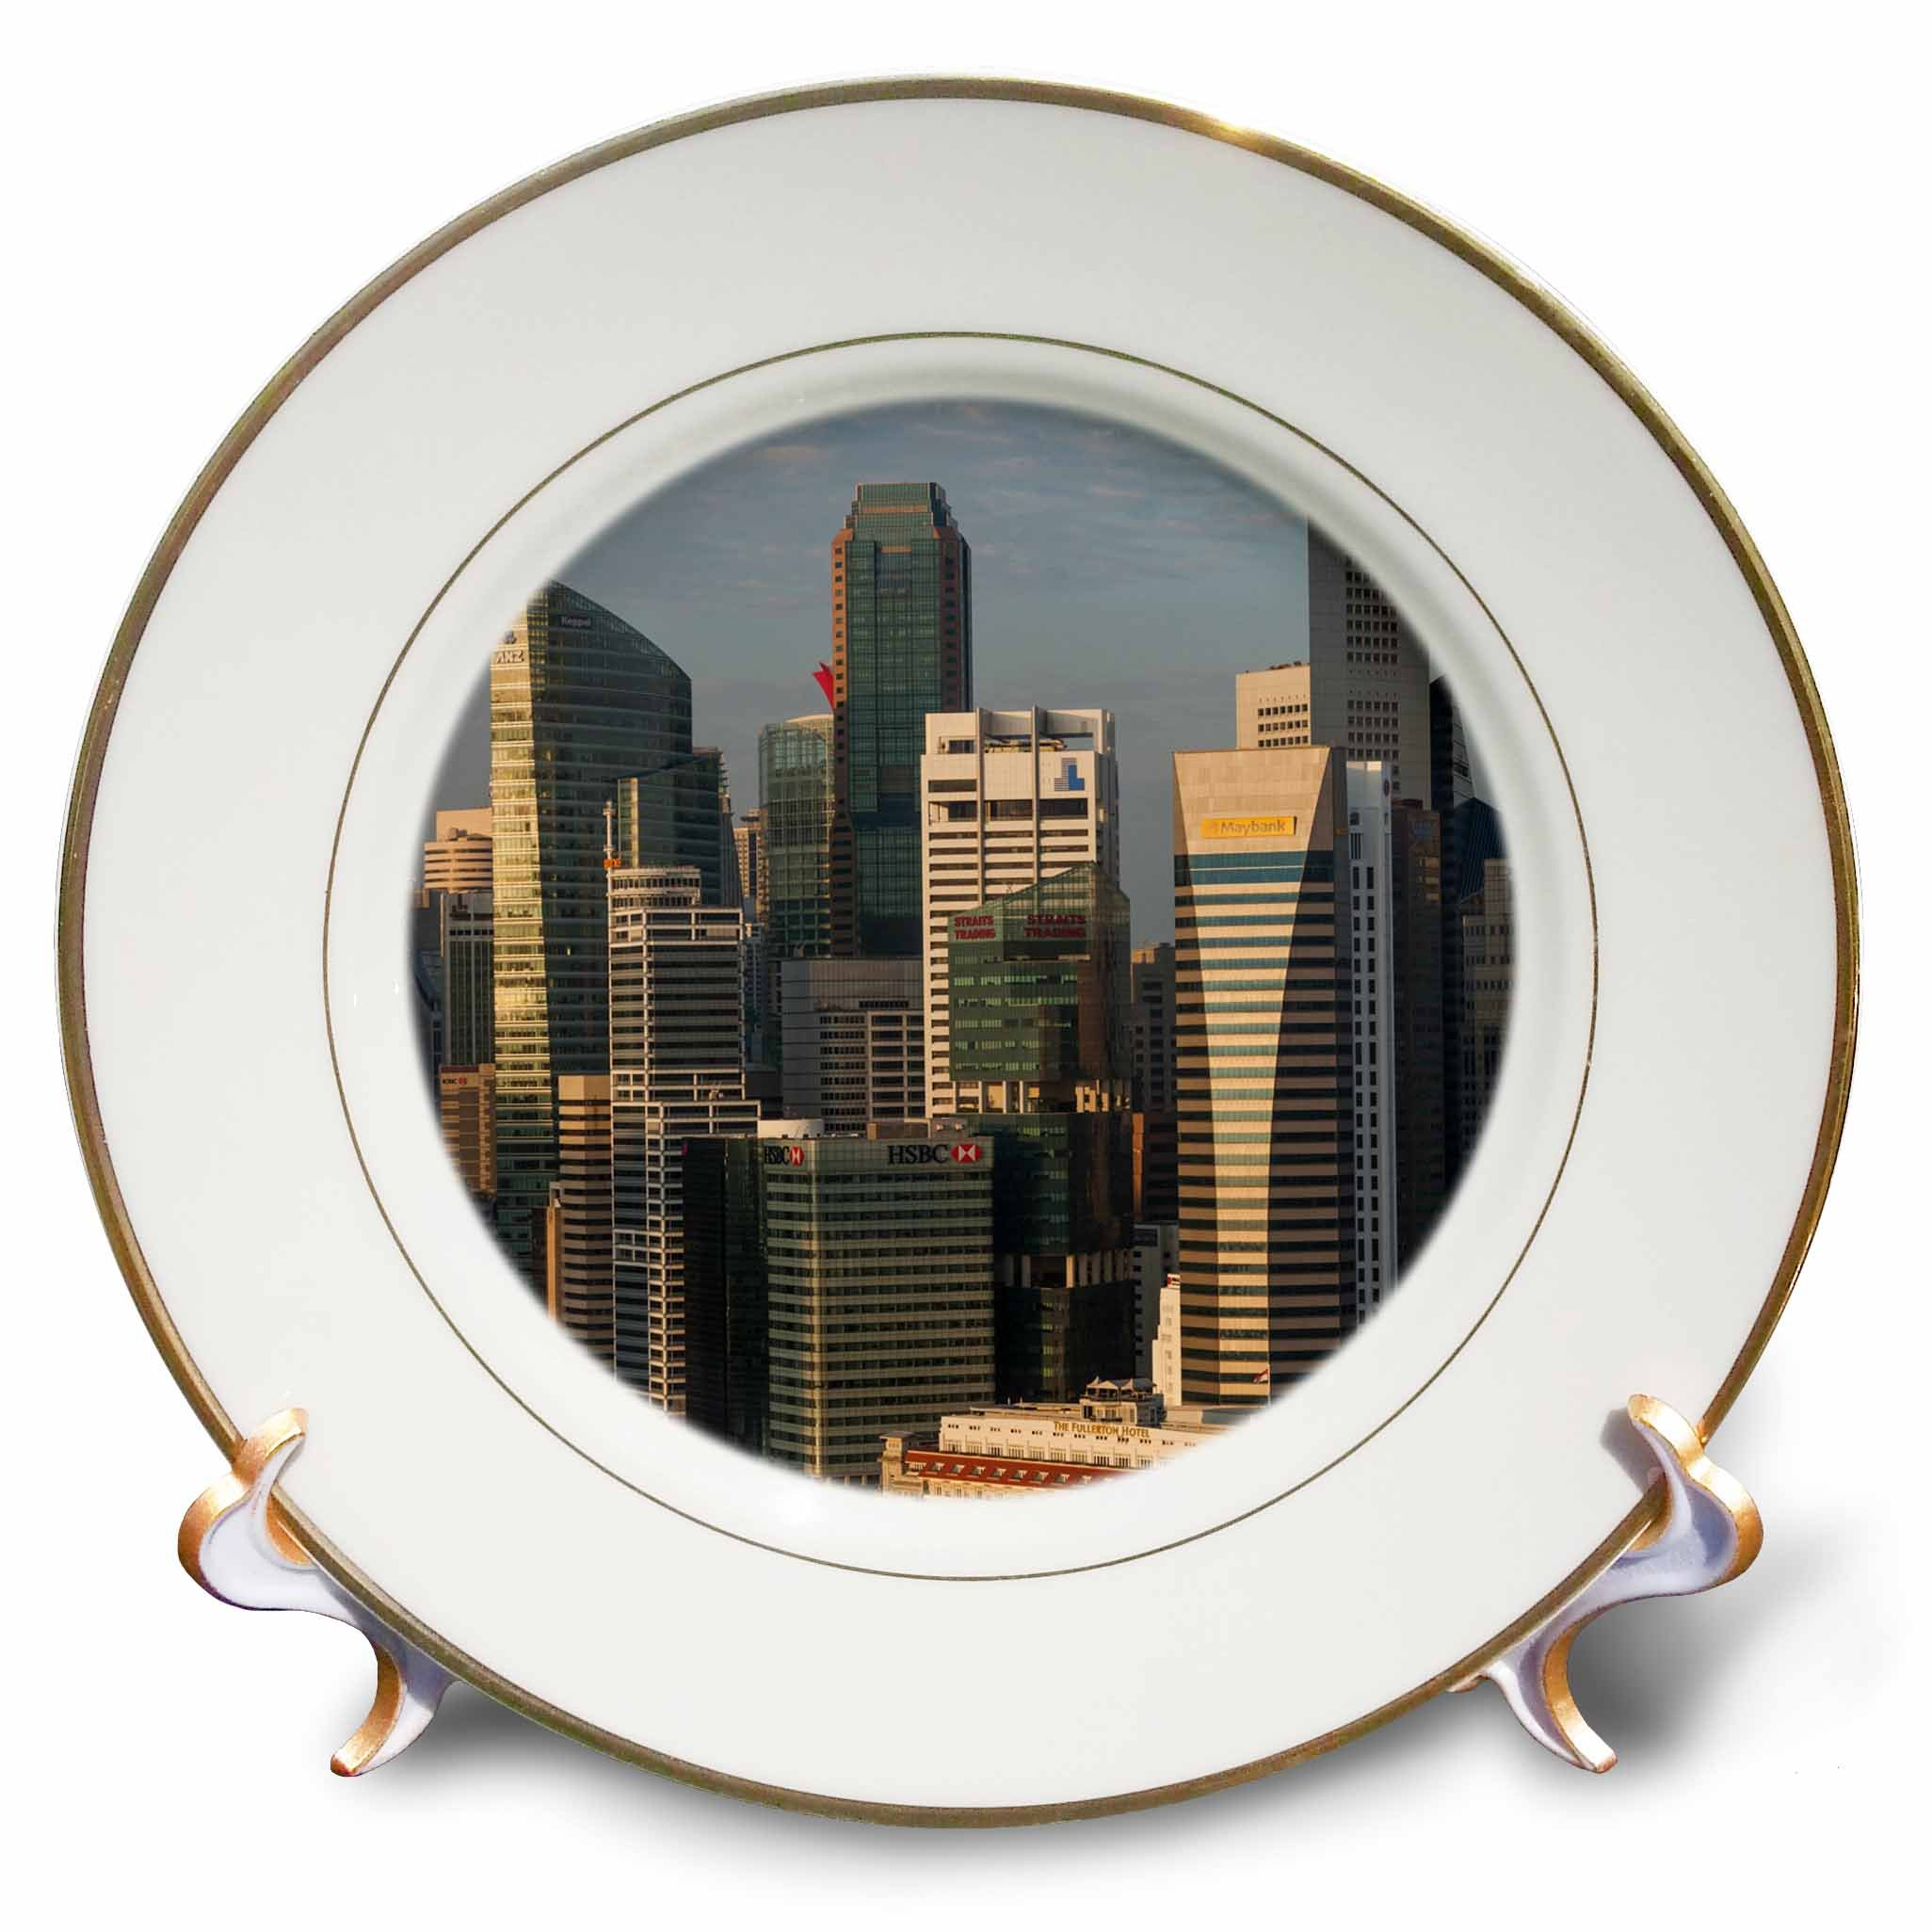 3dRose Danita Delimont - Cities - Singapore, elevated skyline view above Fullerton Hotel, dawn - 8 inch Porcelain Plate (cp_257279_1)